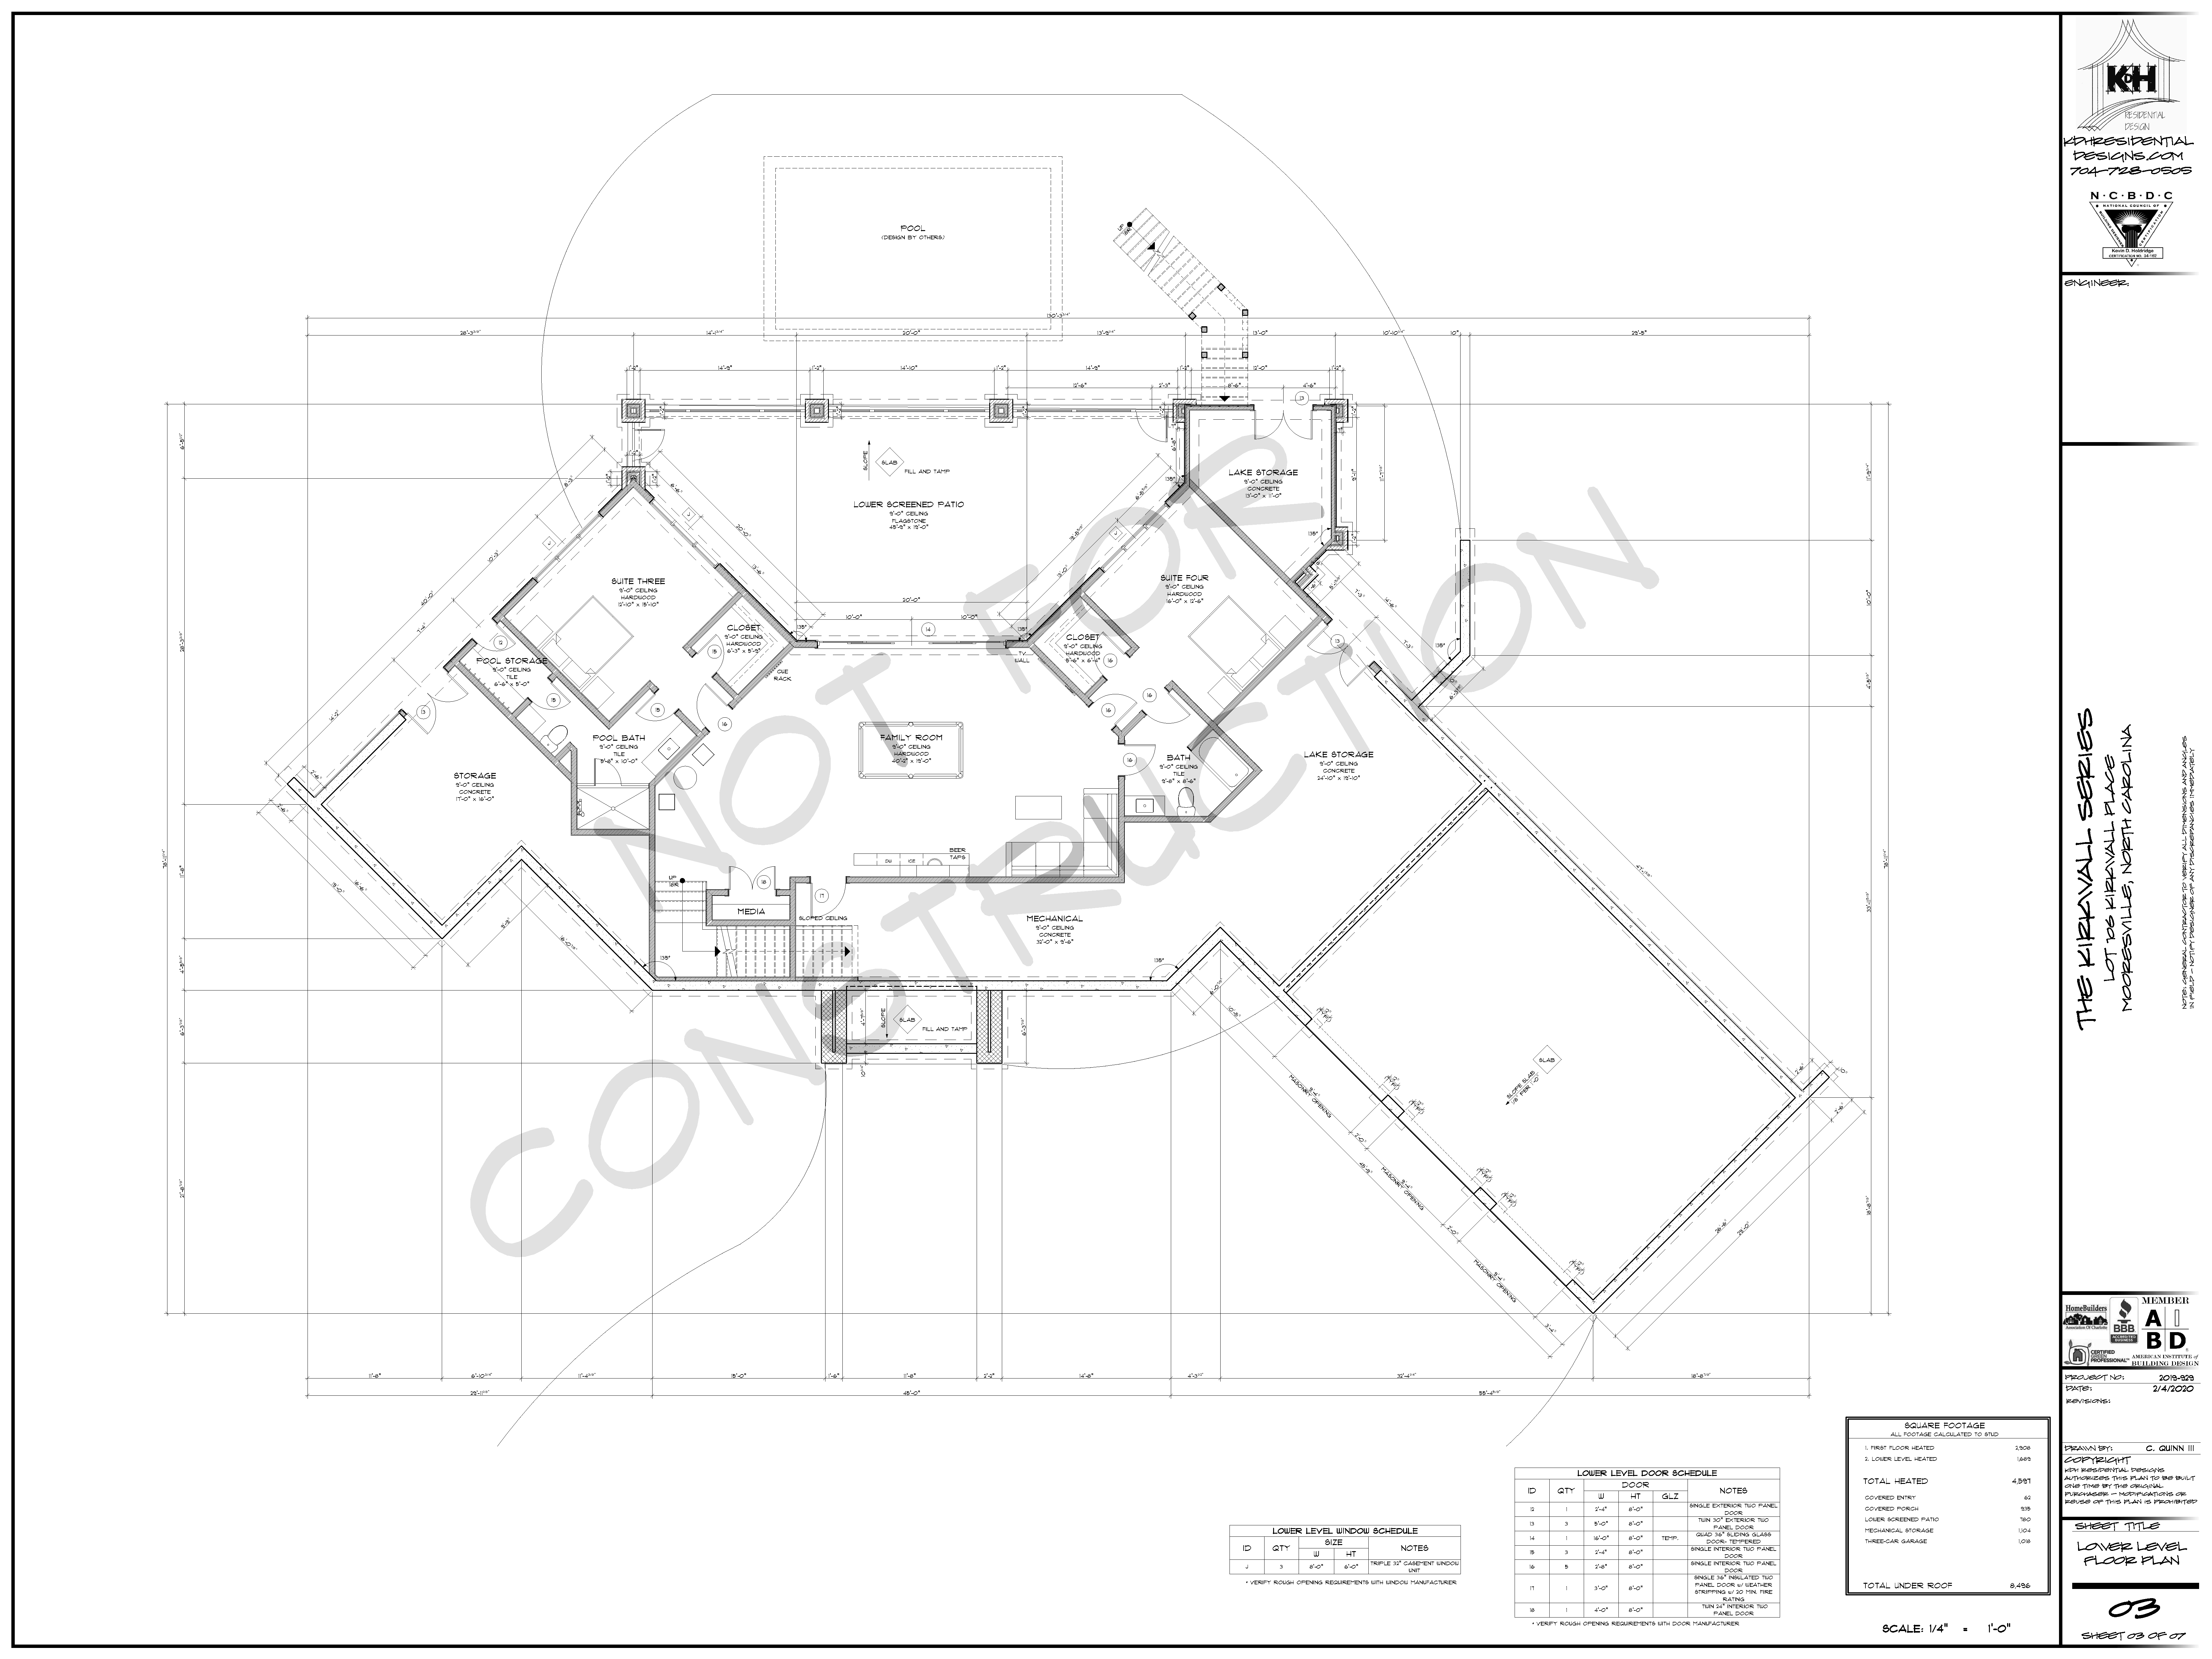 Proposed Floor Plan (Lower Level)